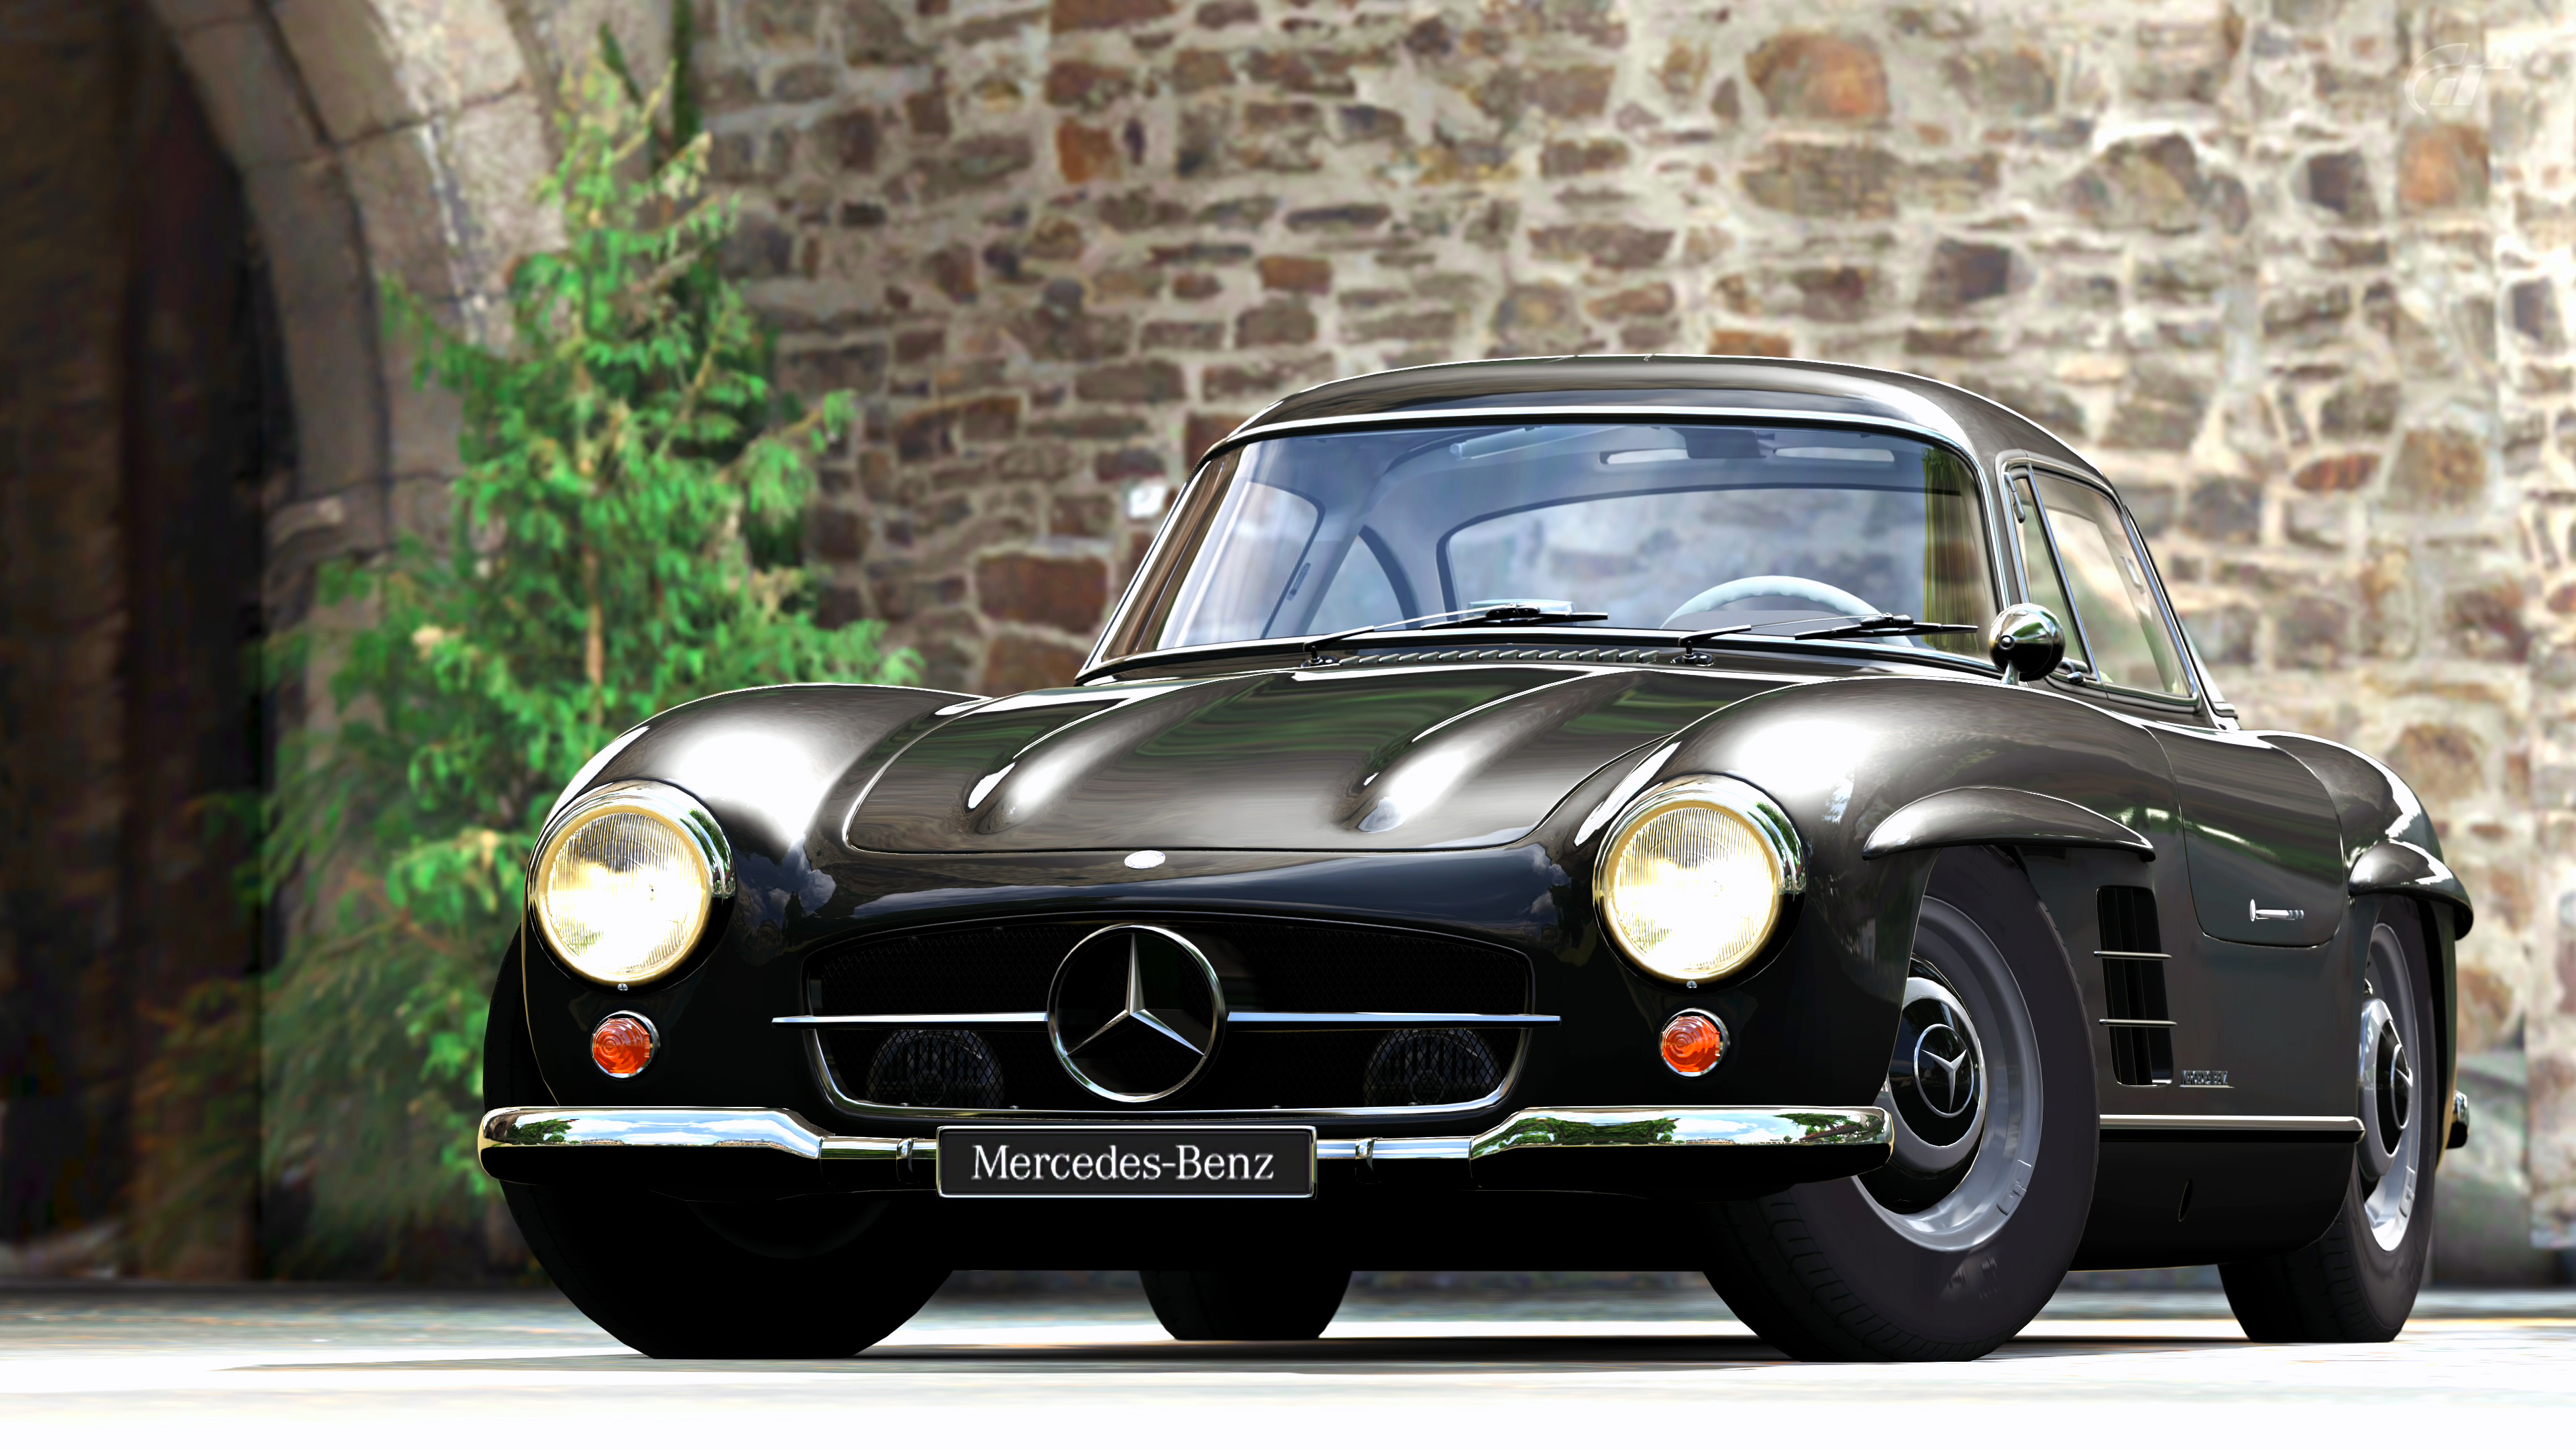 1954 mercedes benz 300sl gullwing gran turismo 5 by. Black Bedroom Furniture Sets. Home Design Ideas